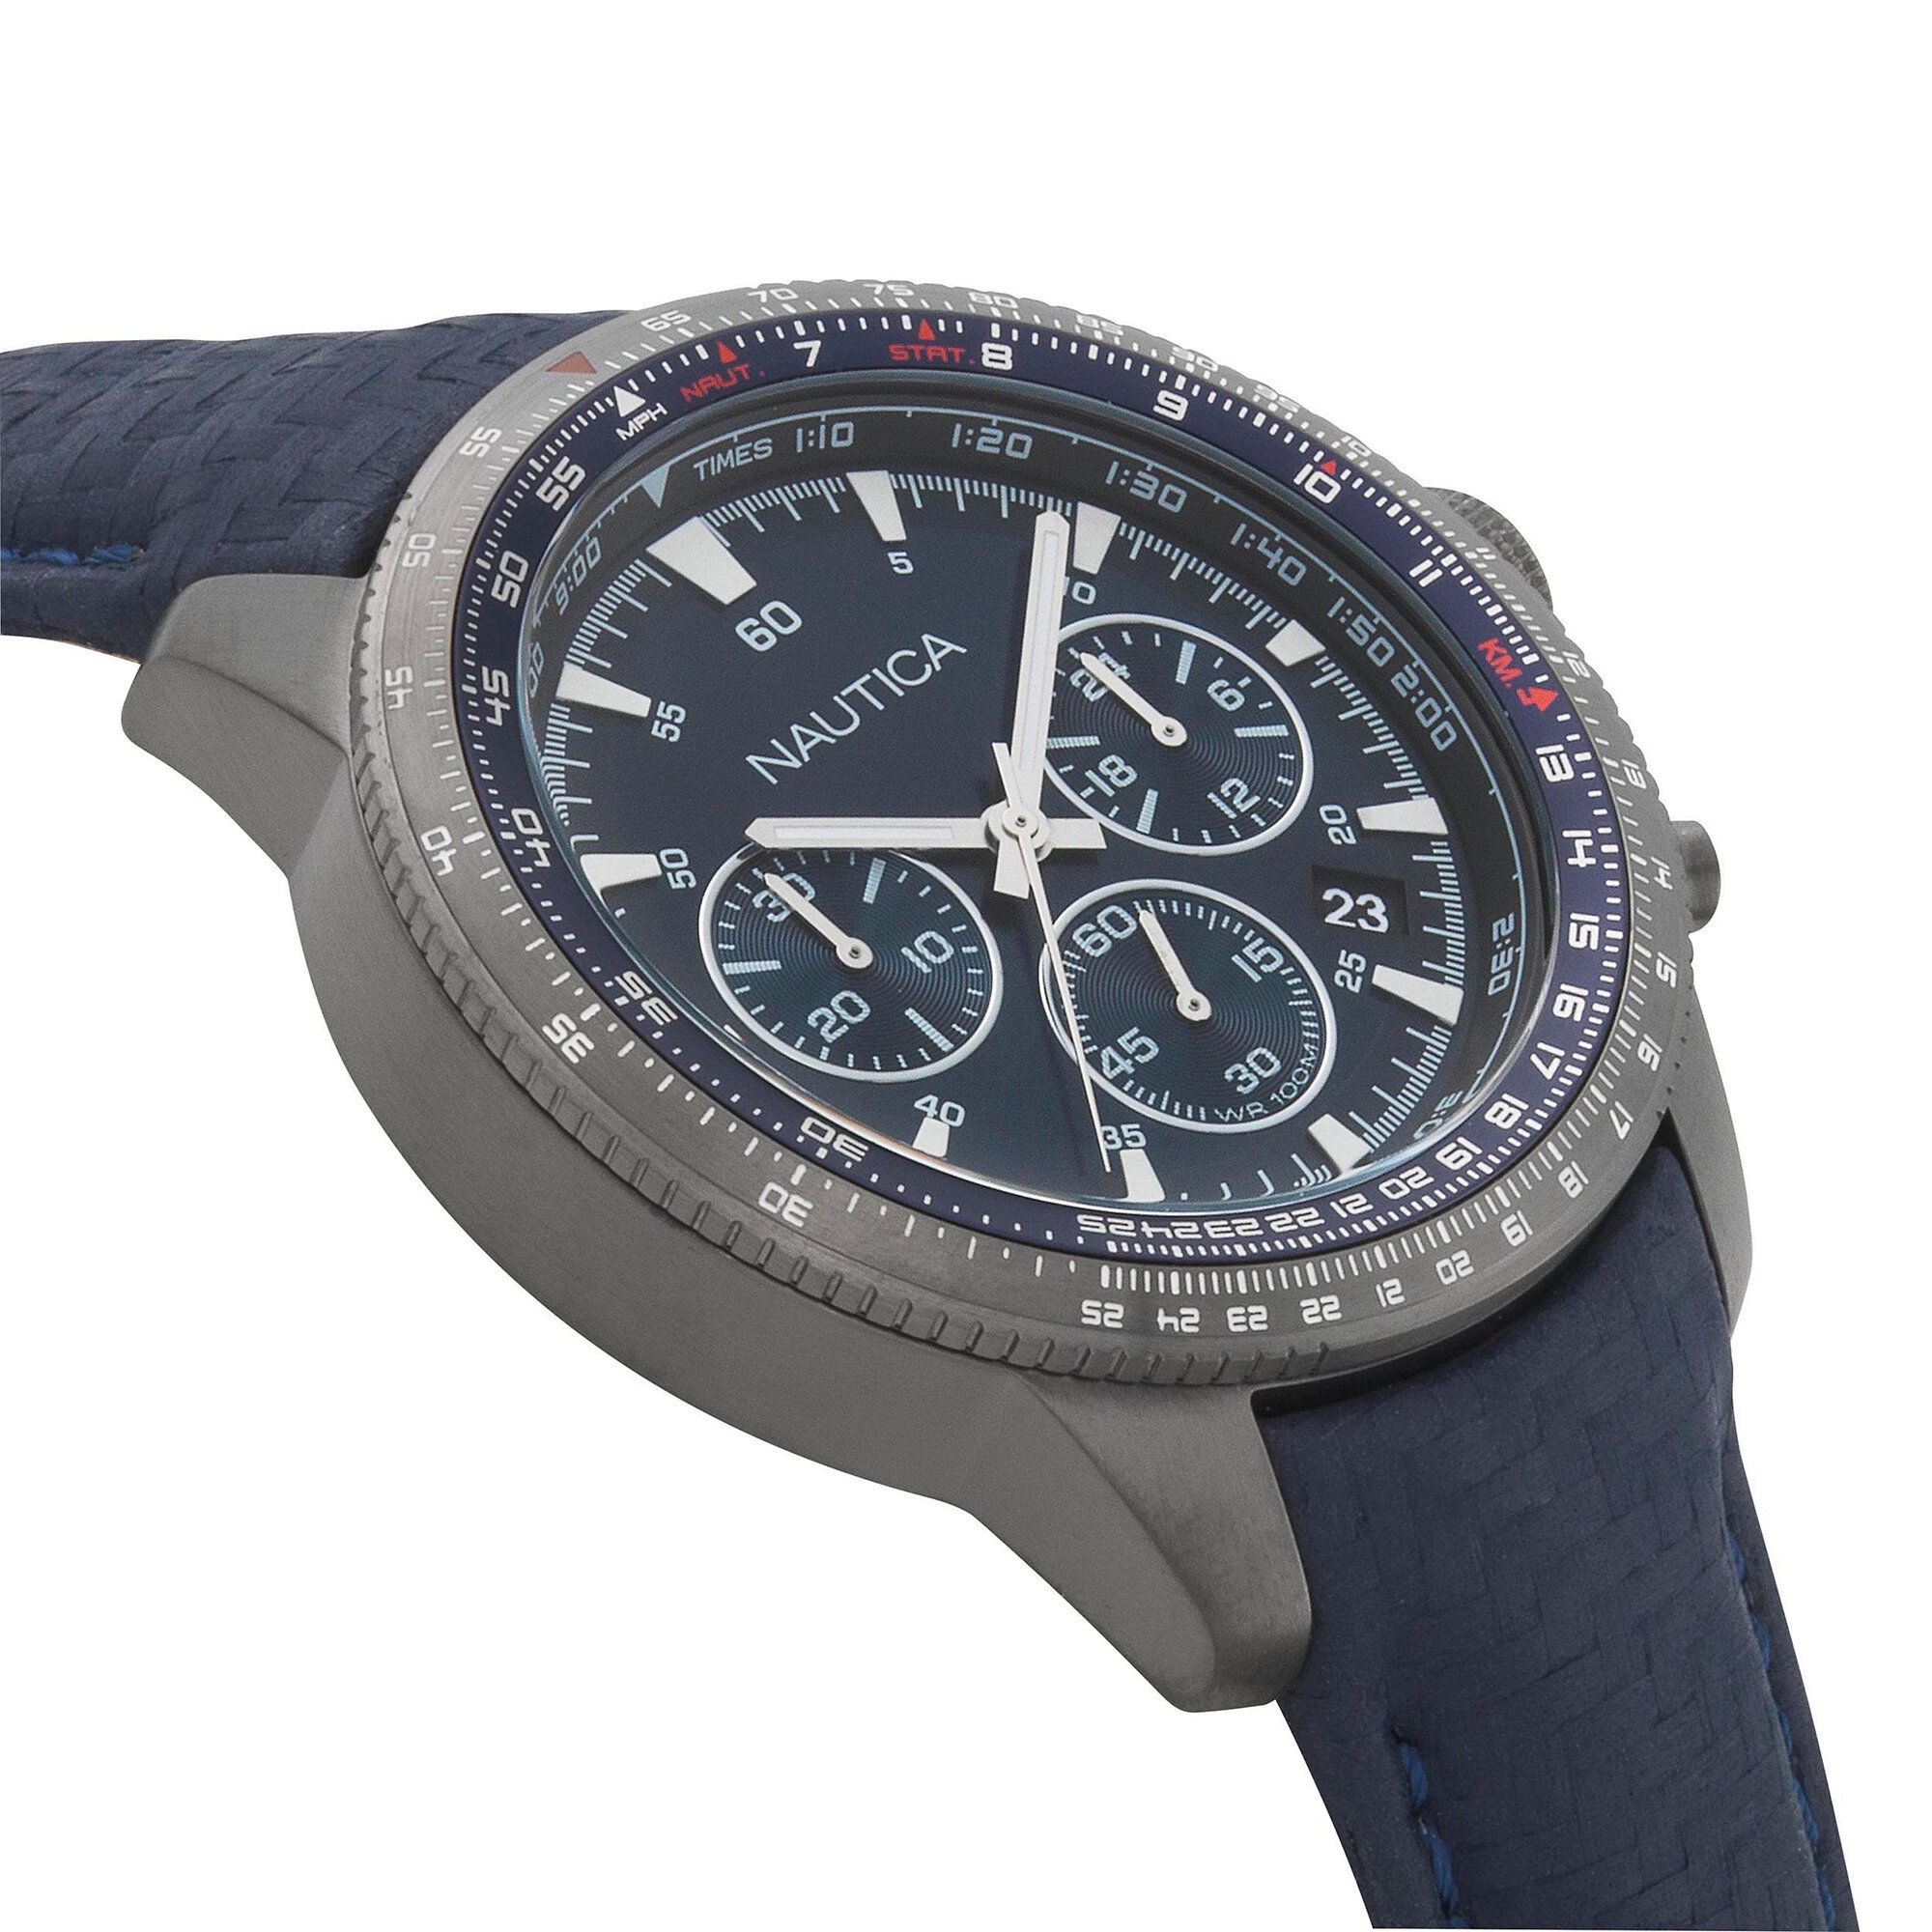 Chronograph Band Pier Watch With Leather 39 6gfb7y